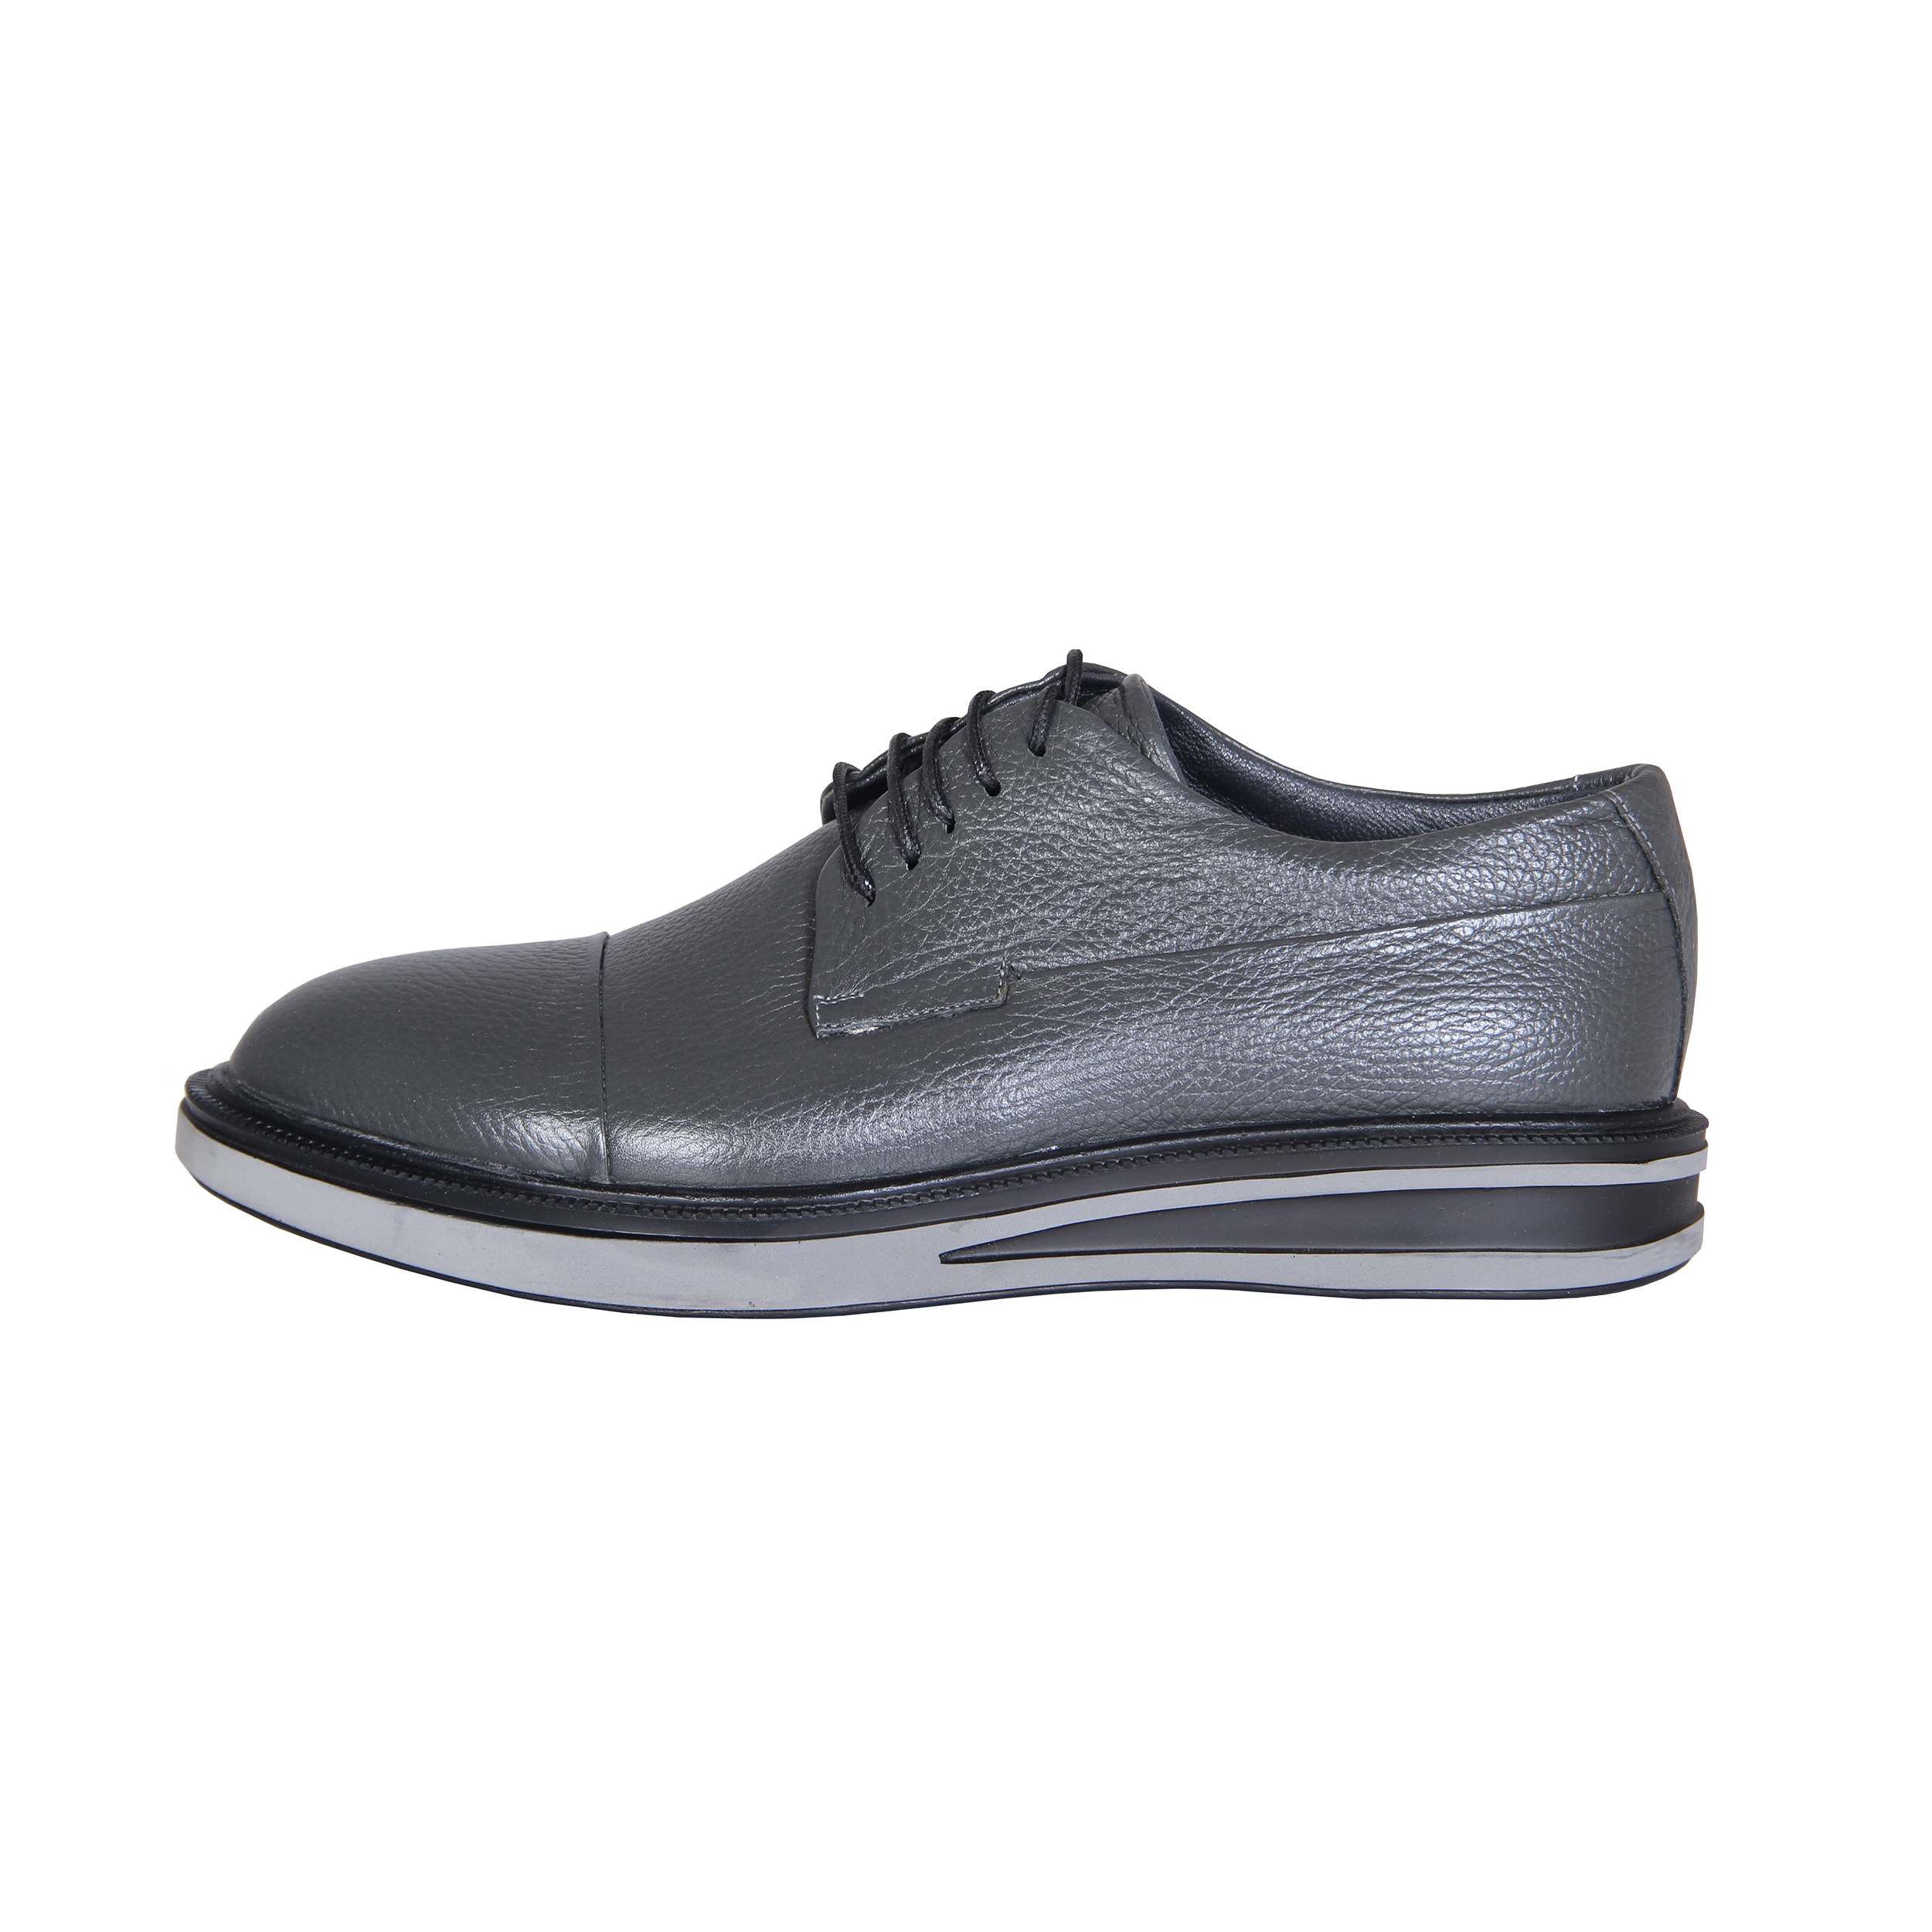 SHAHRECHARM leather men's casual shoes , GH1092-21 Model